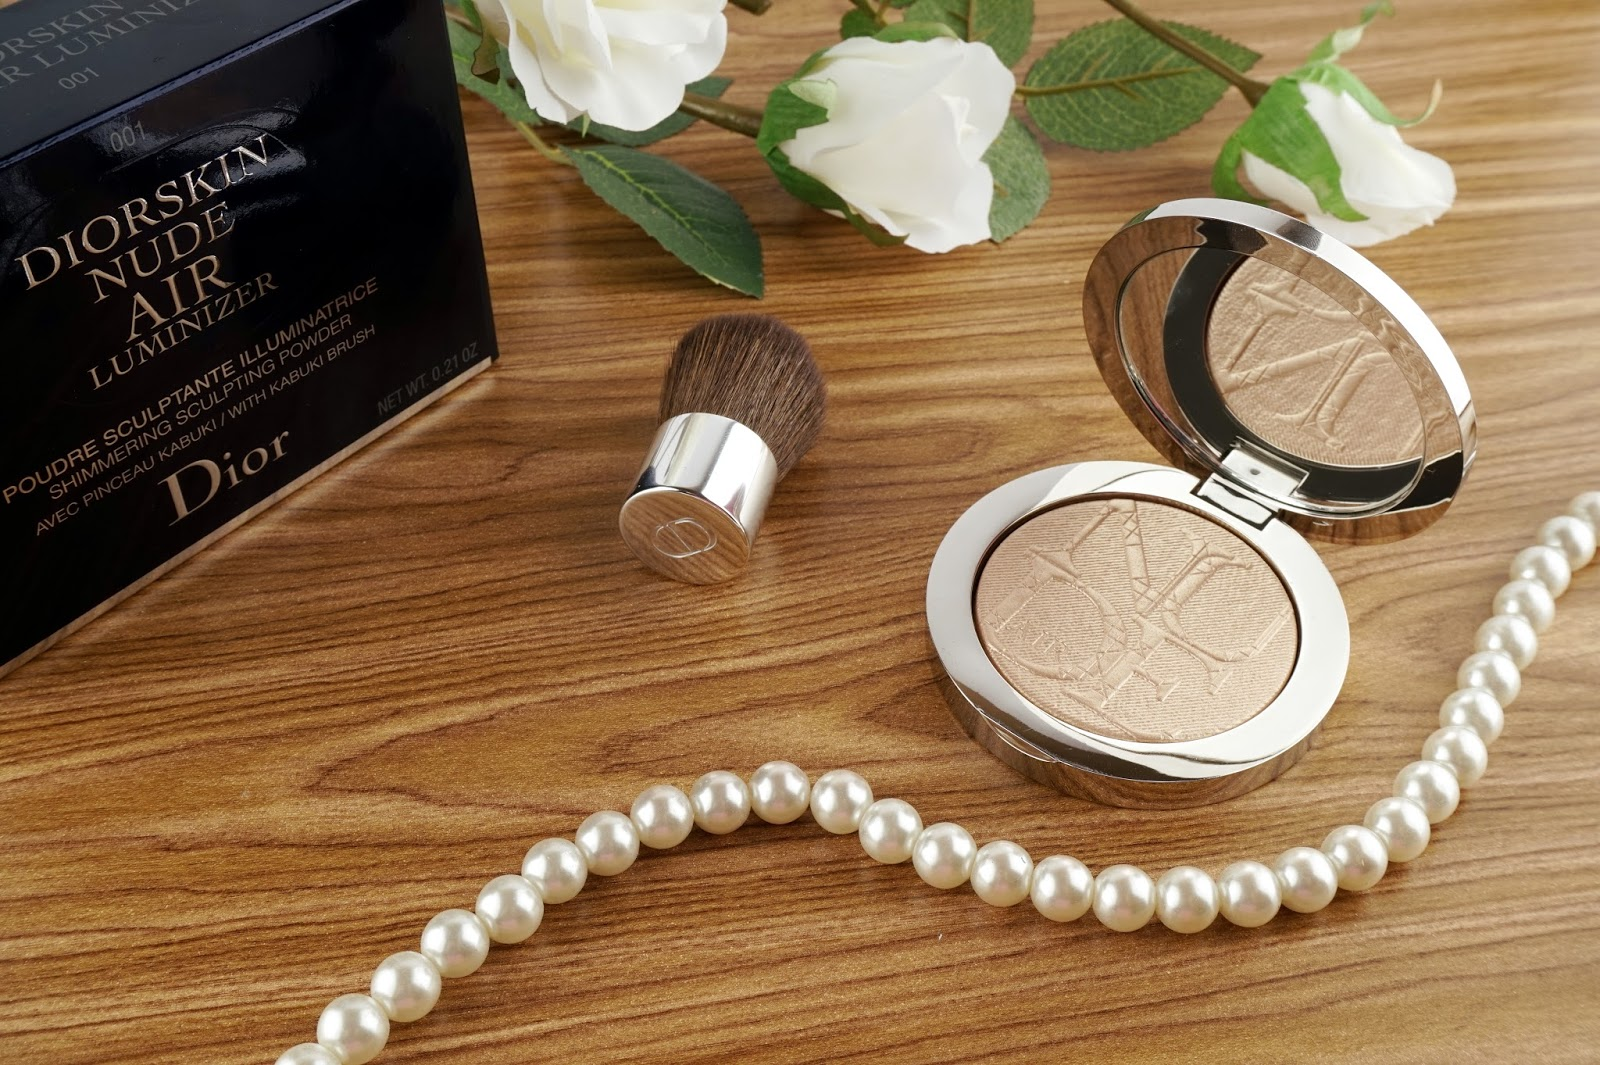 diorskin nude air luminizer shimmering sculpting powder 001 review swatches 1